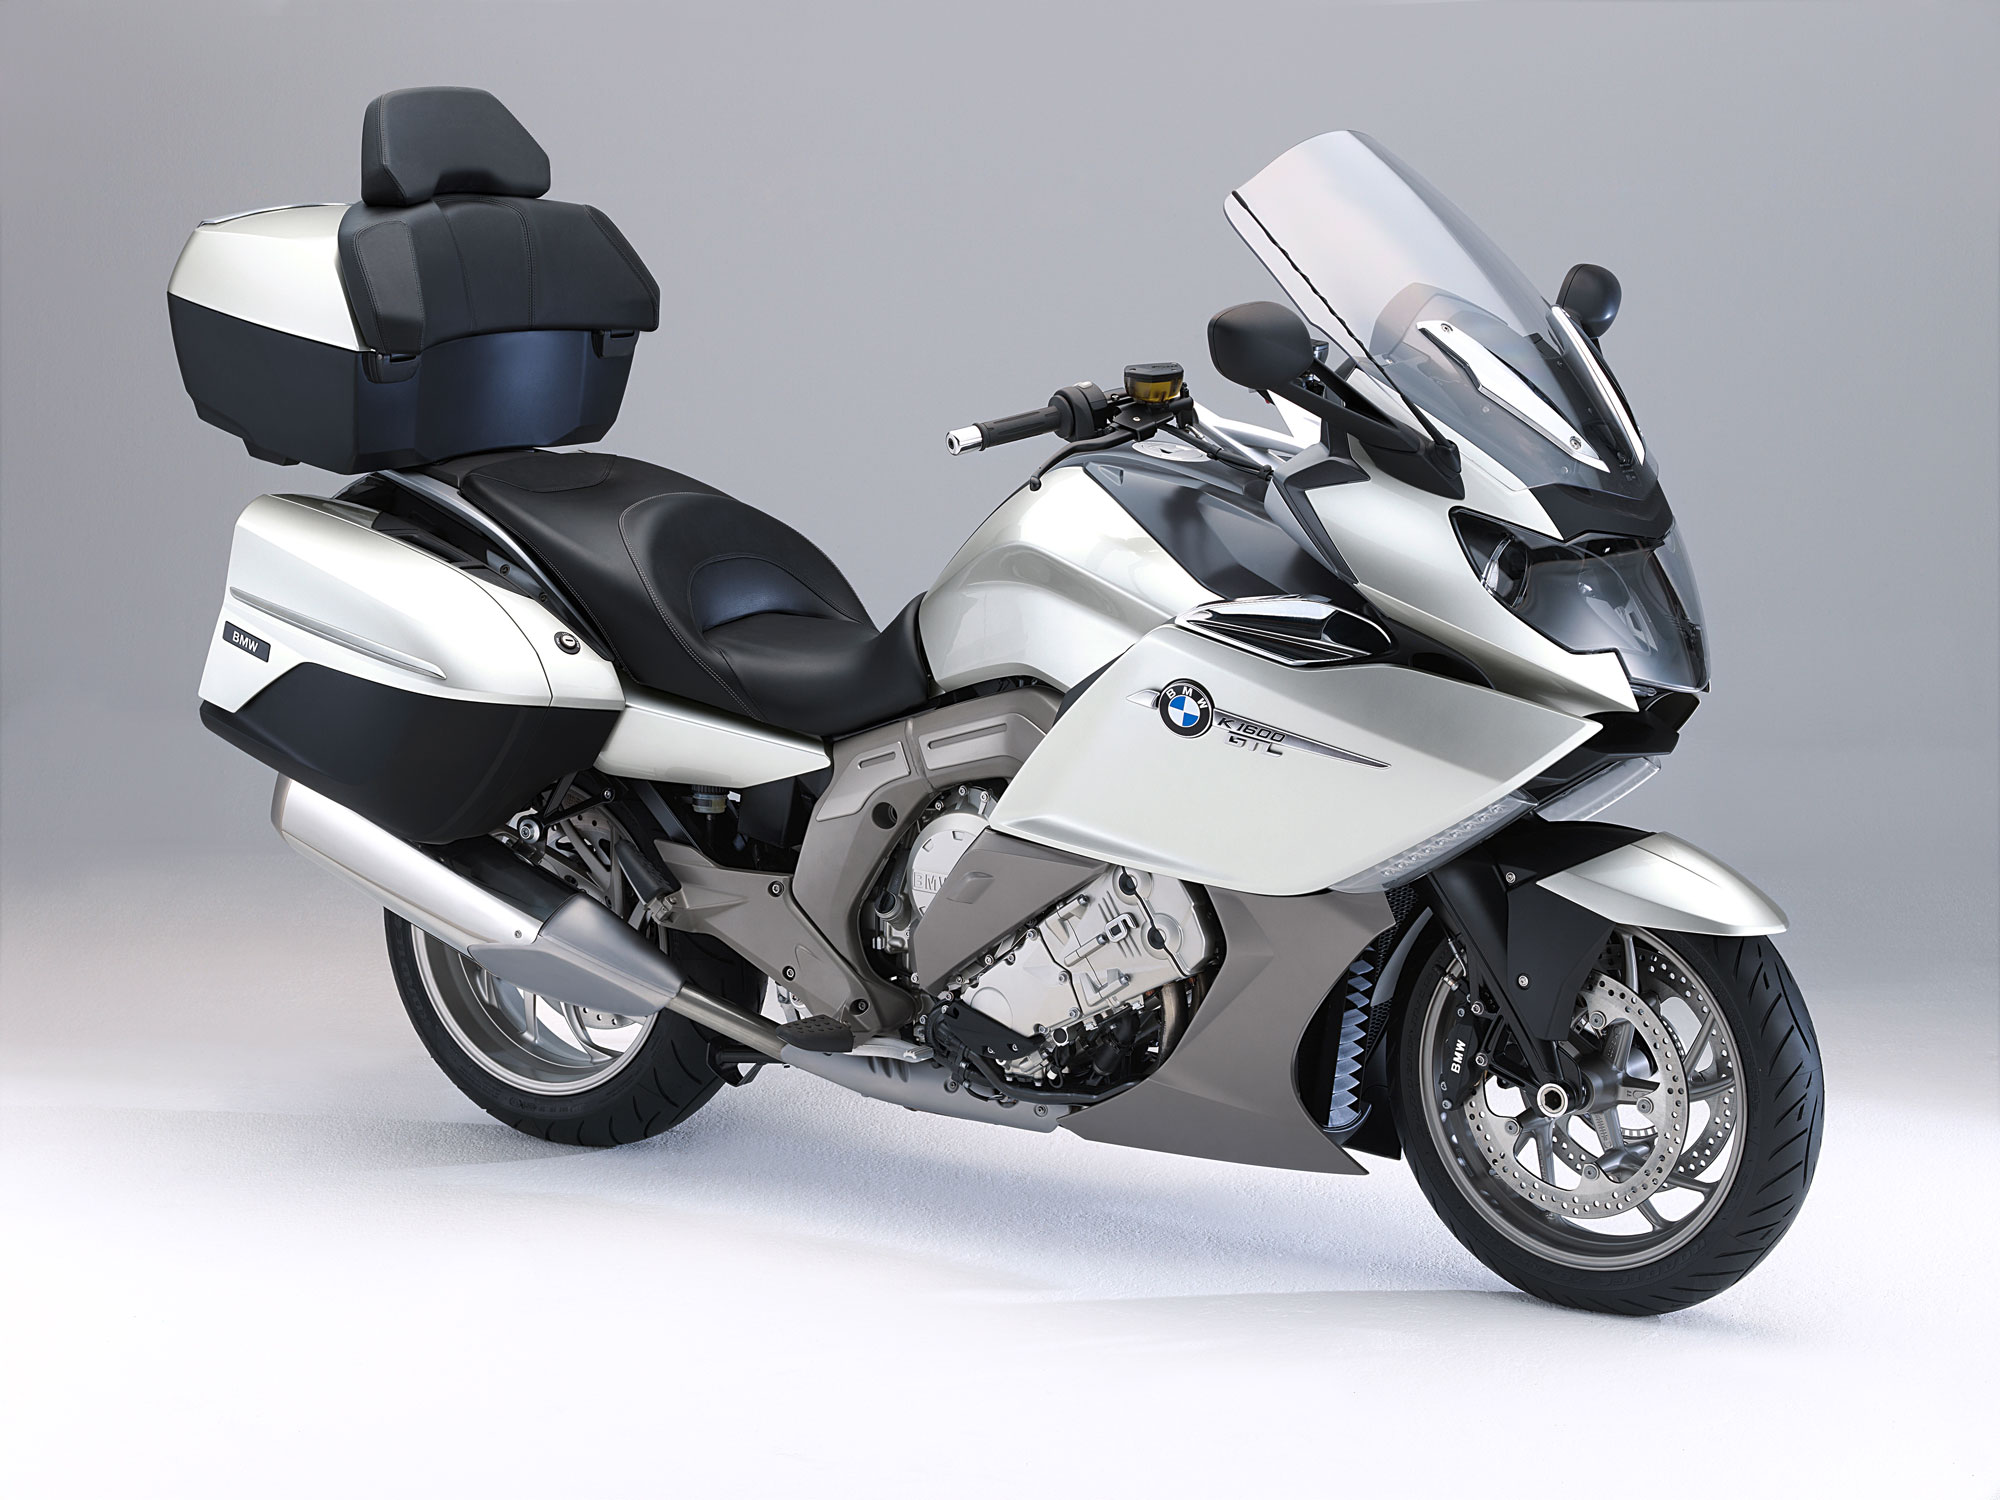 k1600gt-2011-2g Exciting Bmw R 1200 Cl forum Cars Trend